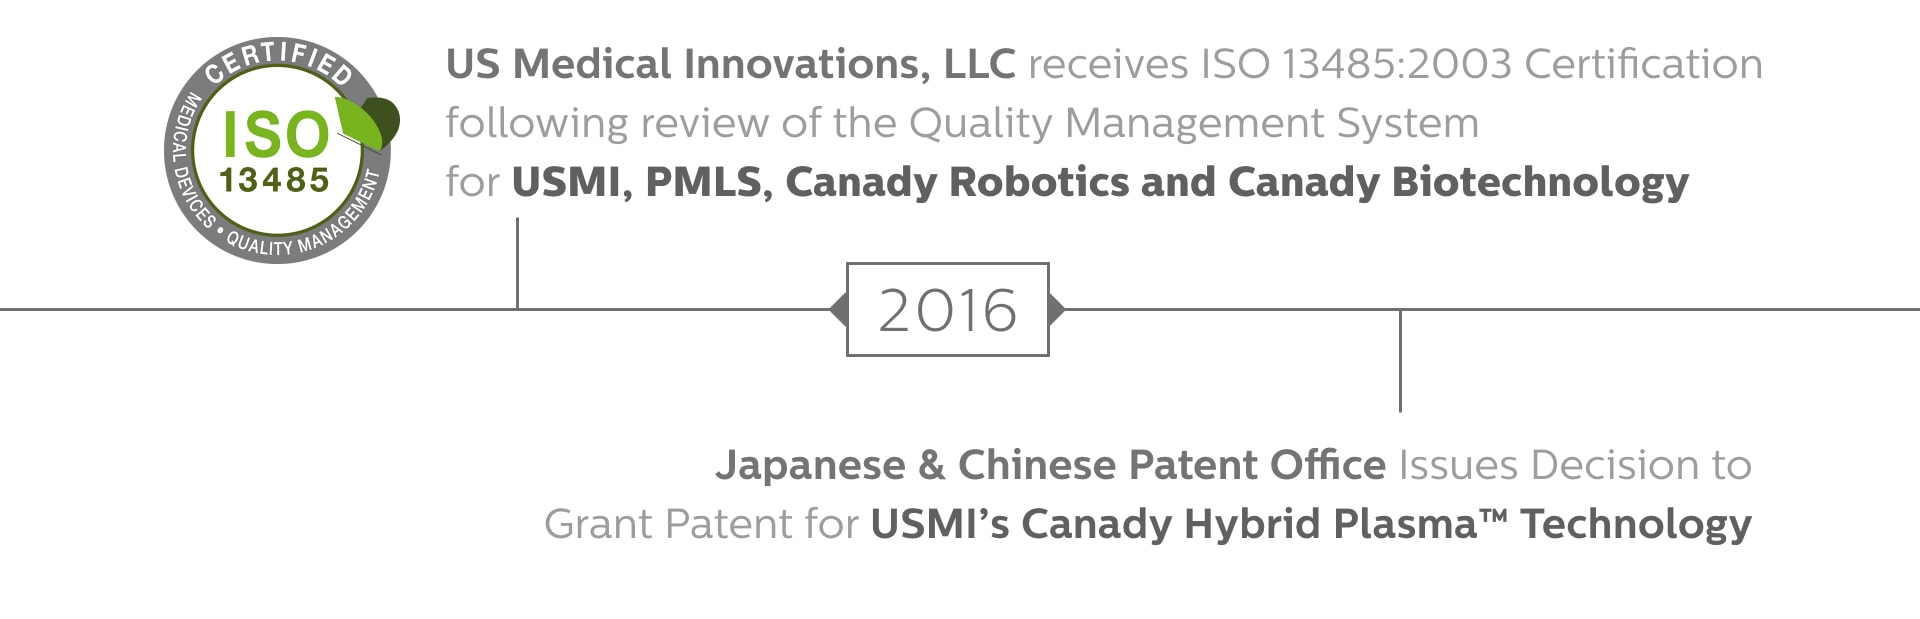 USMI's Canady Hybrid Plasma Technology granted patent in Japan and China.